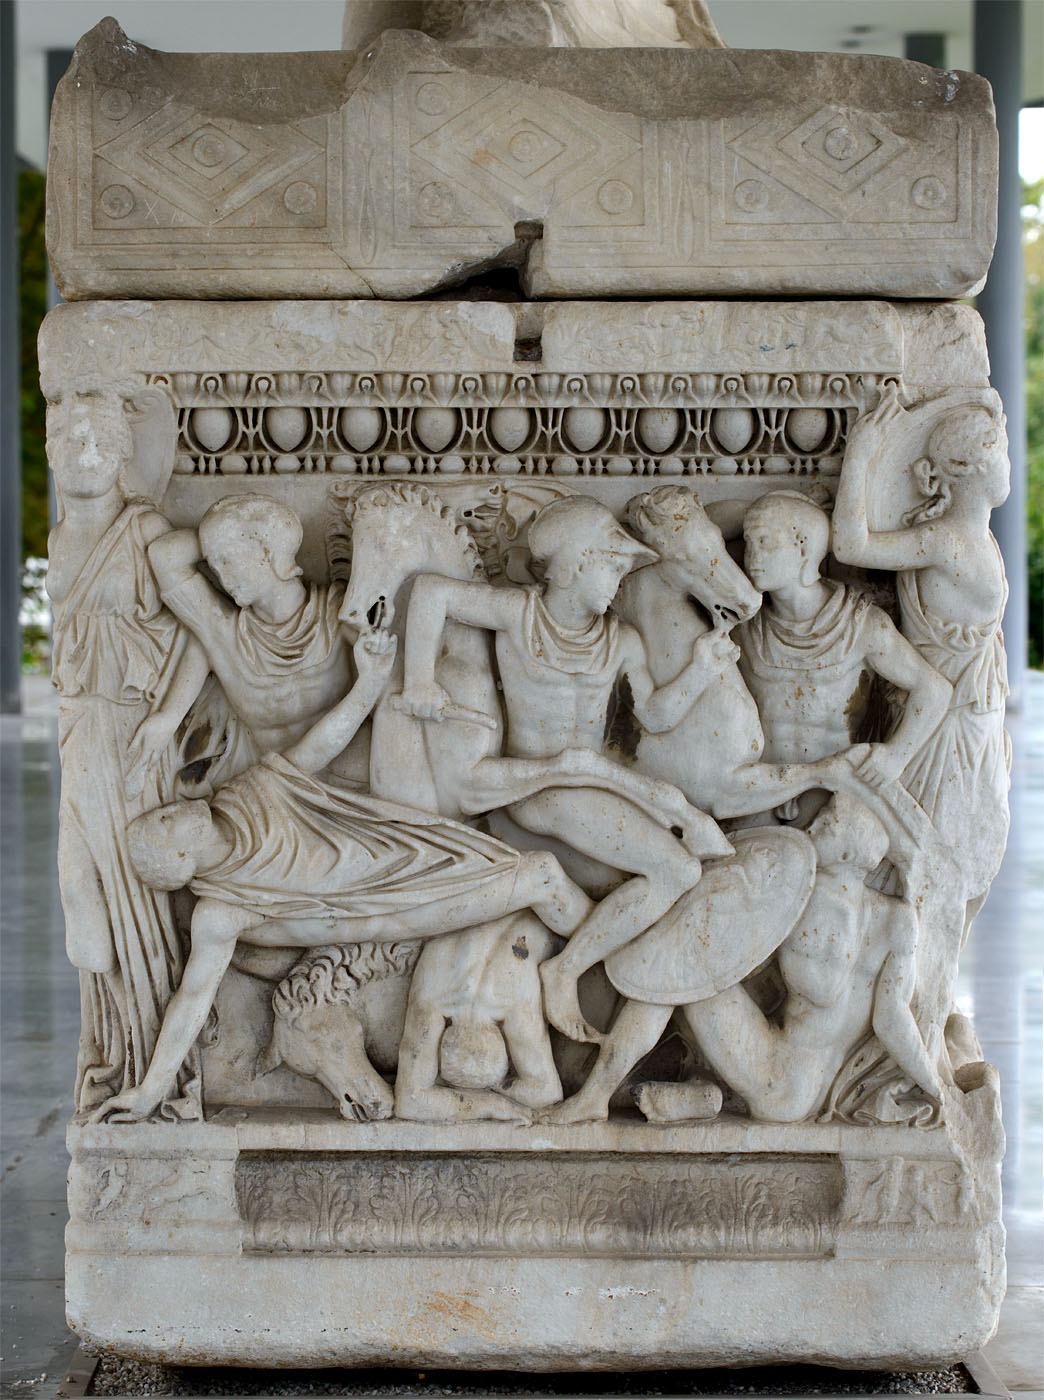 Attic sarcophagus with scenes of battles between the Greeks and the Trojan and a scene of Calydonian hunt — left short side. Marble. 220—230 CE. Inv. No. 1246. Thessaloniki, Archaeological Museum